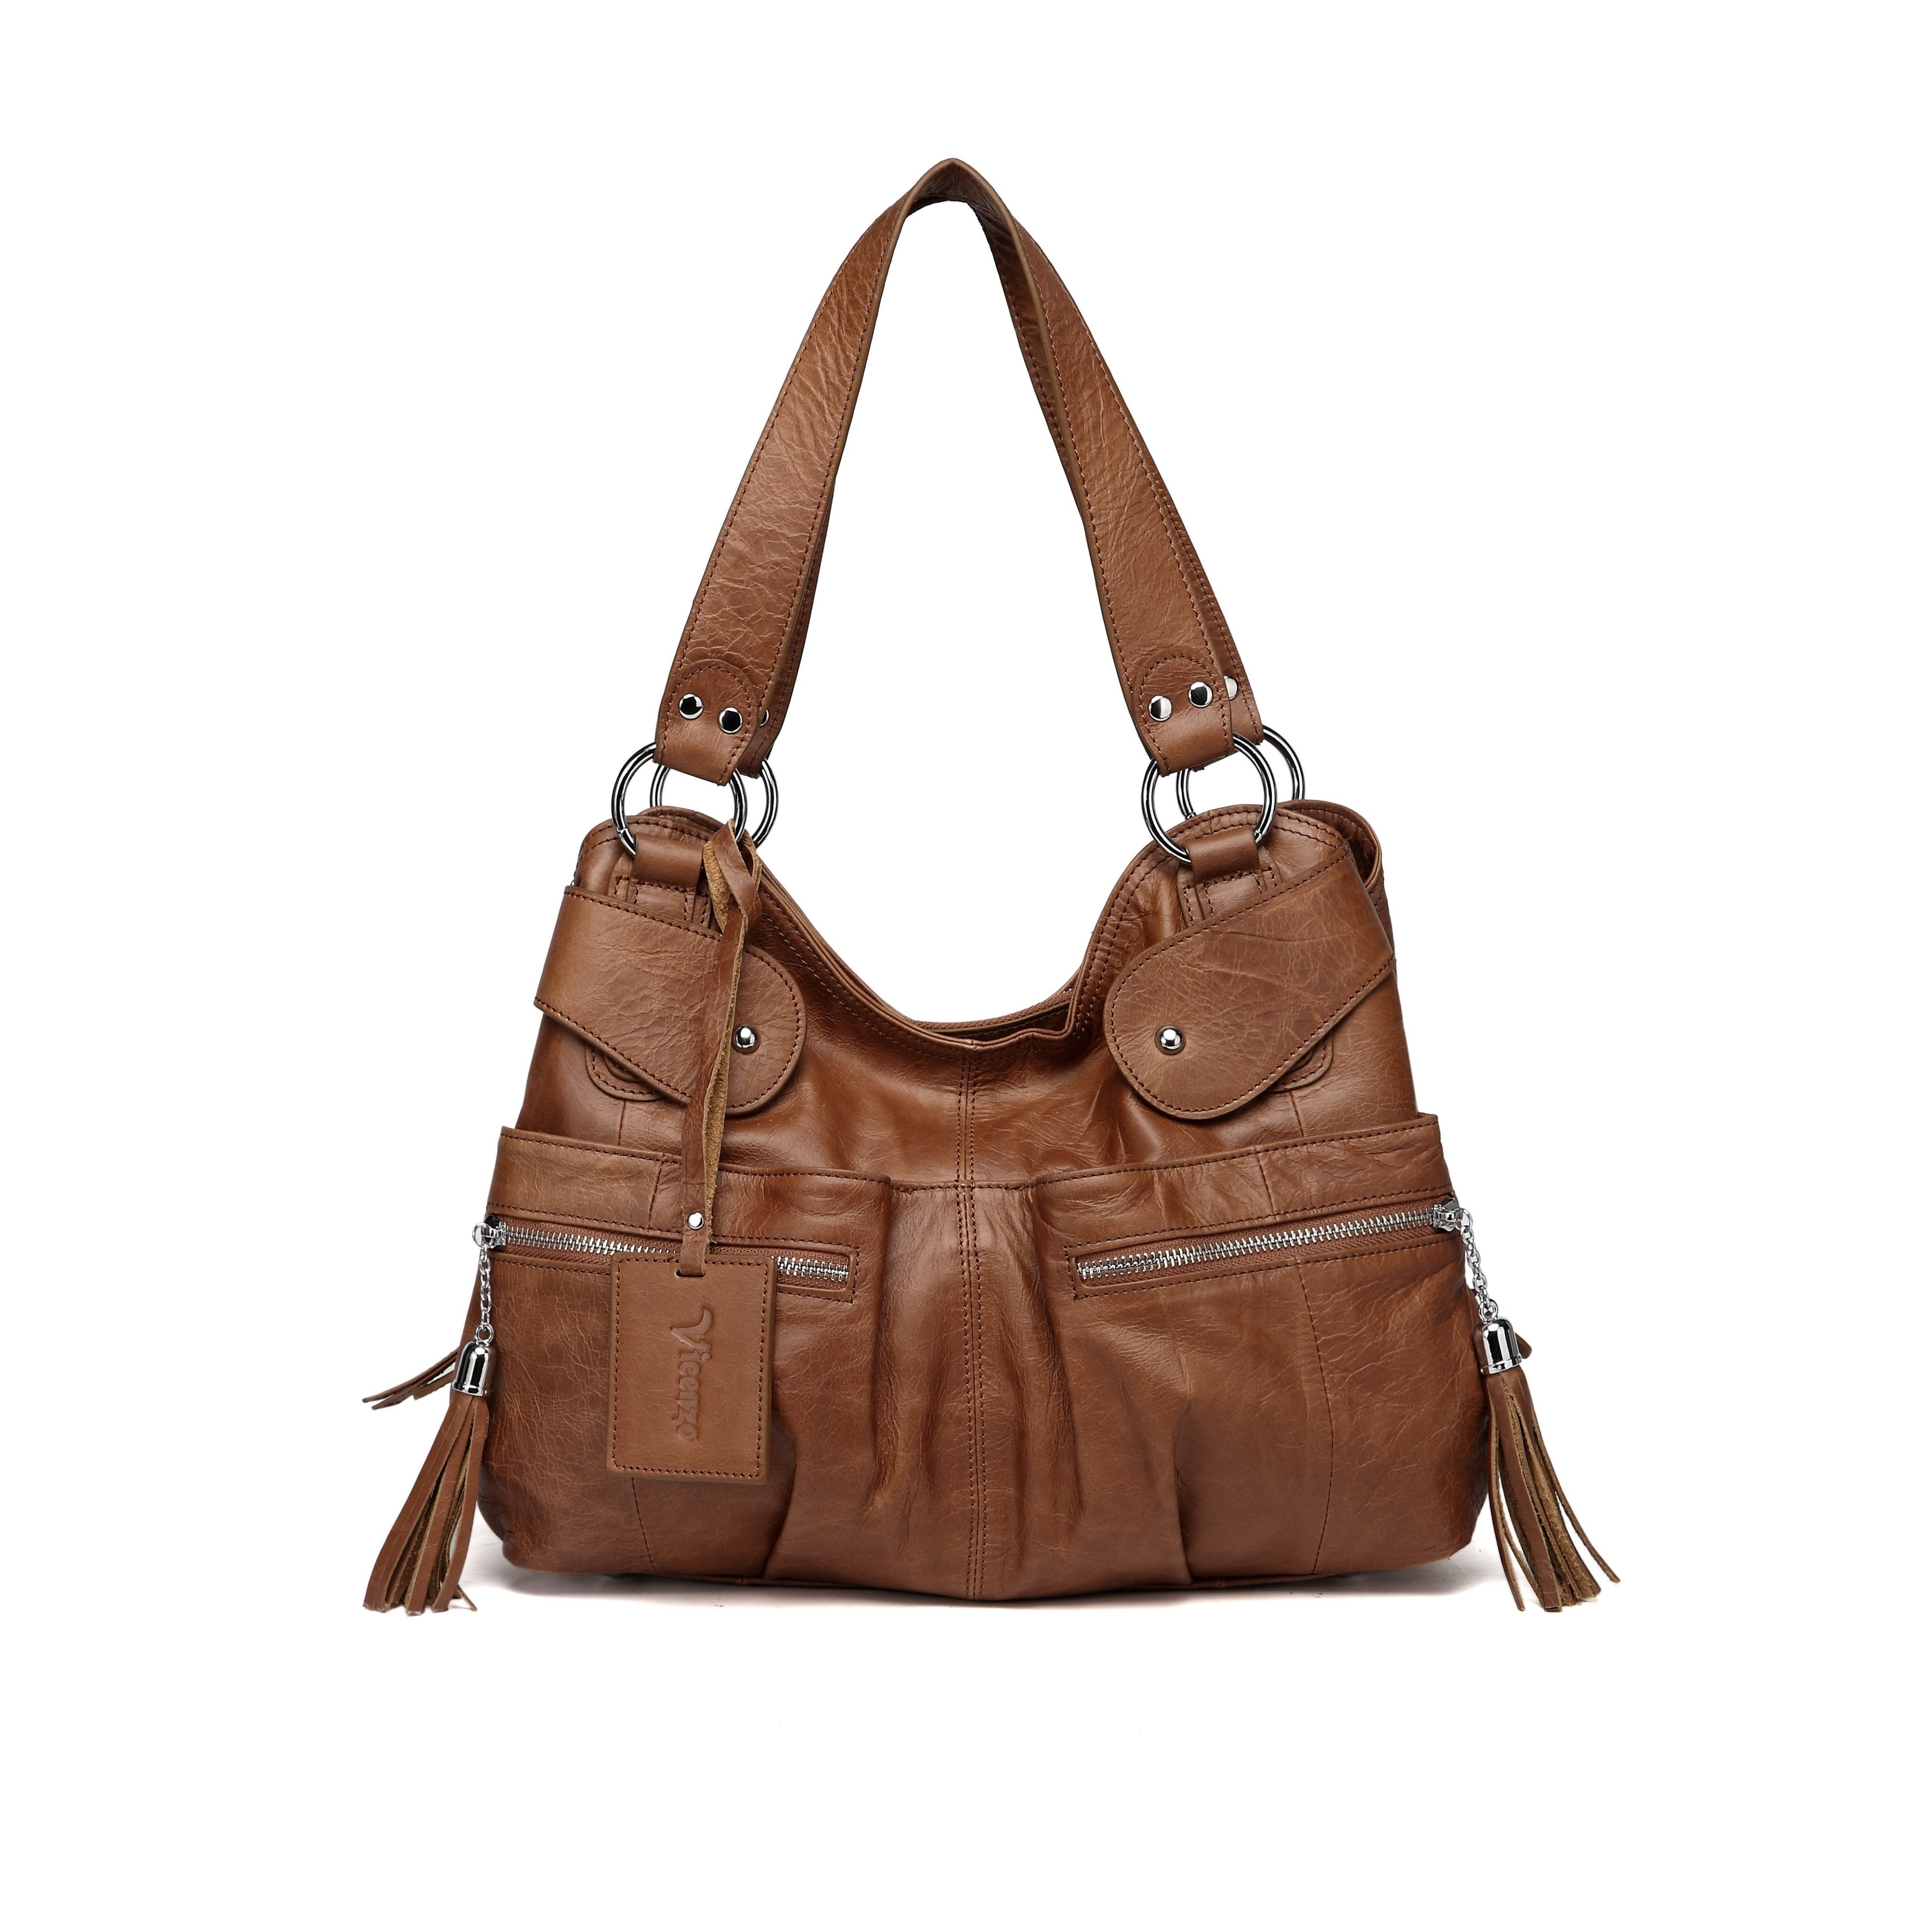 Vicenzo Leather Athena Tan Italian Handbag On Free Shipping Today 10363273